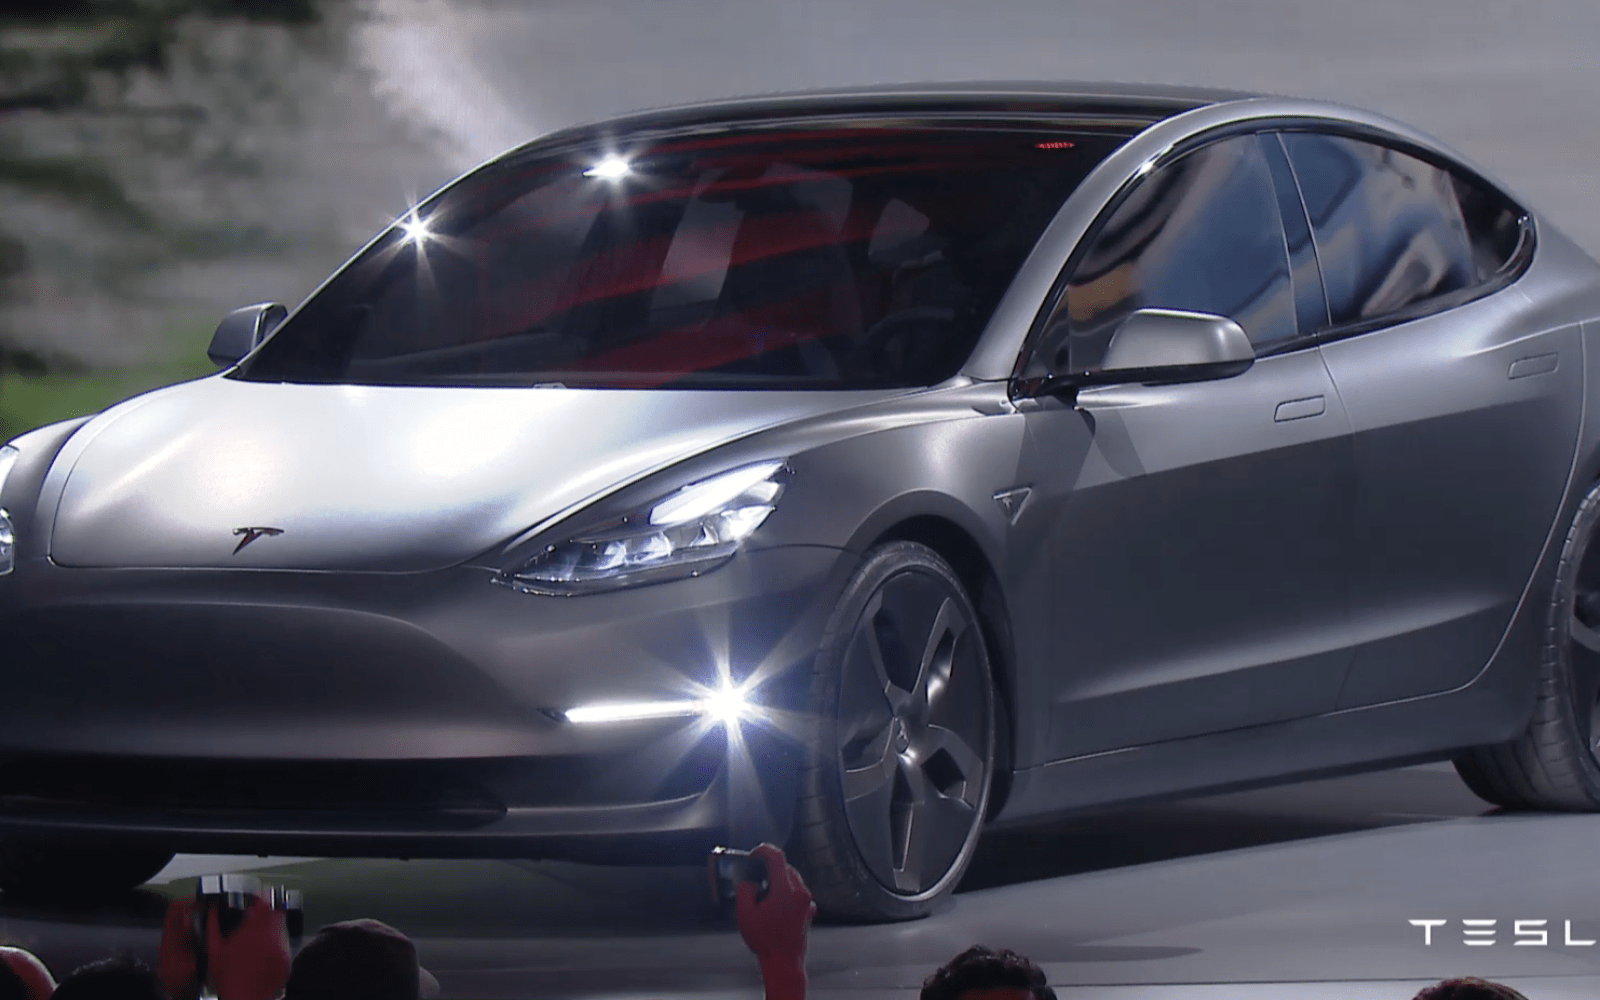 tesla received 132 000 model 3 reservations with deposits within